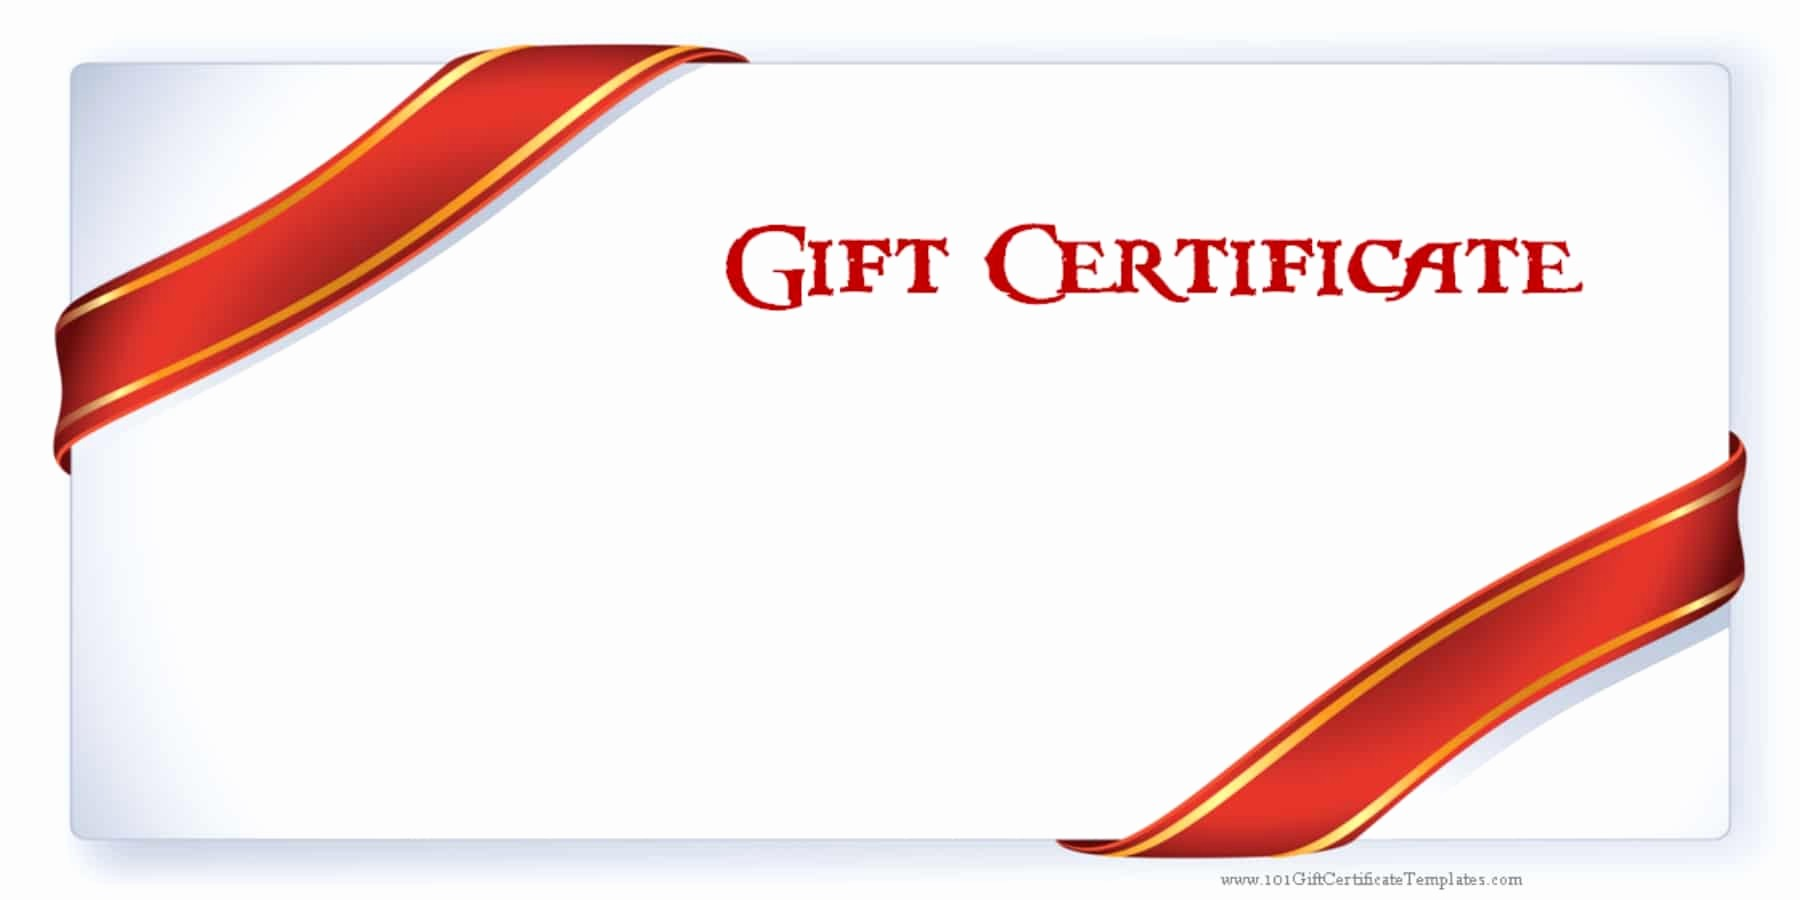 Generic Gift Certificate Template Free Unique Templates Clipart T Certificate Pencil and In Color